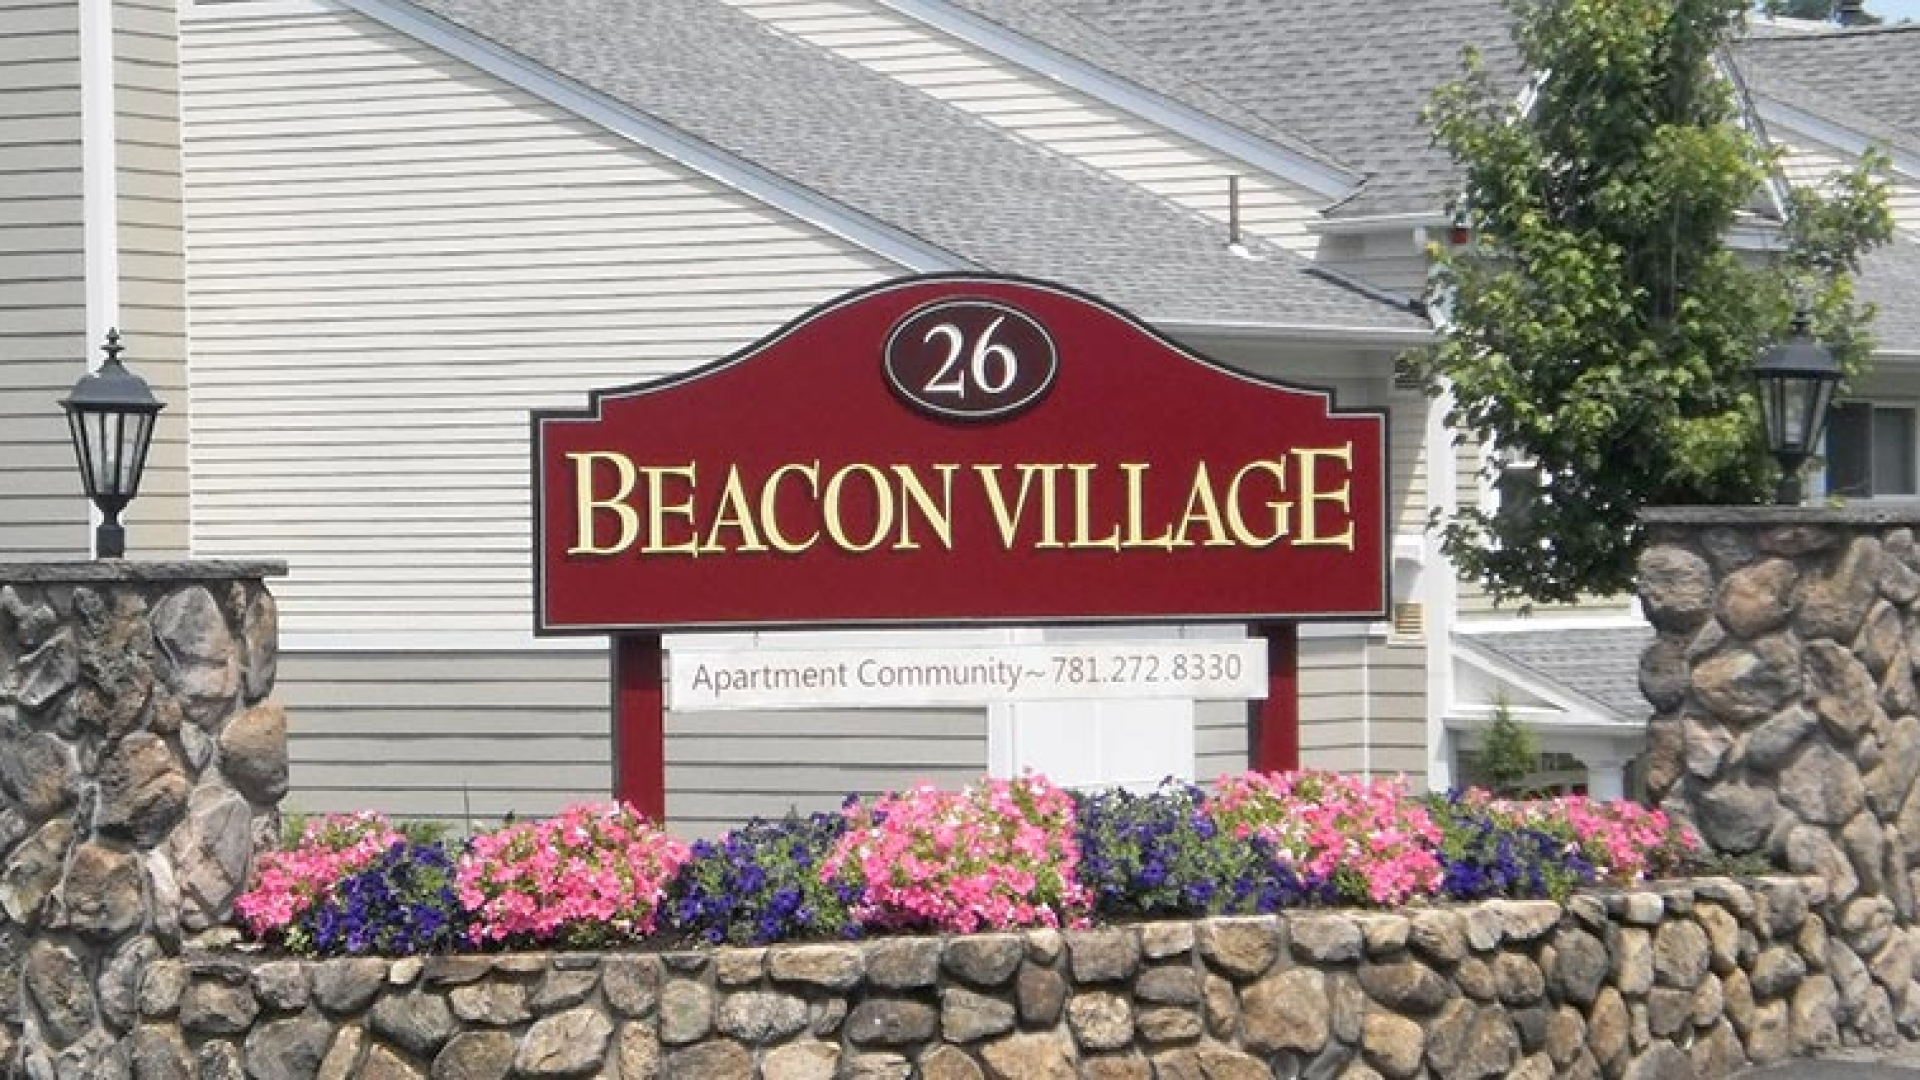 Beacon Village